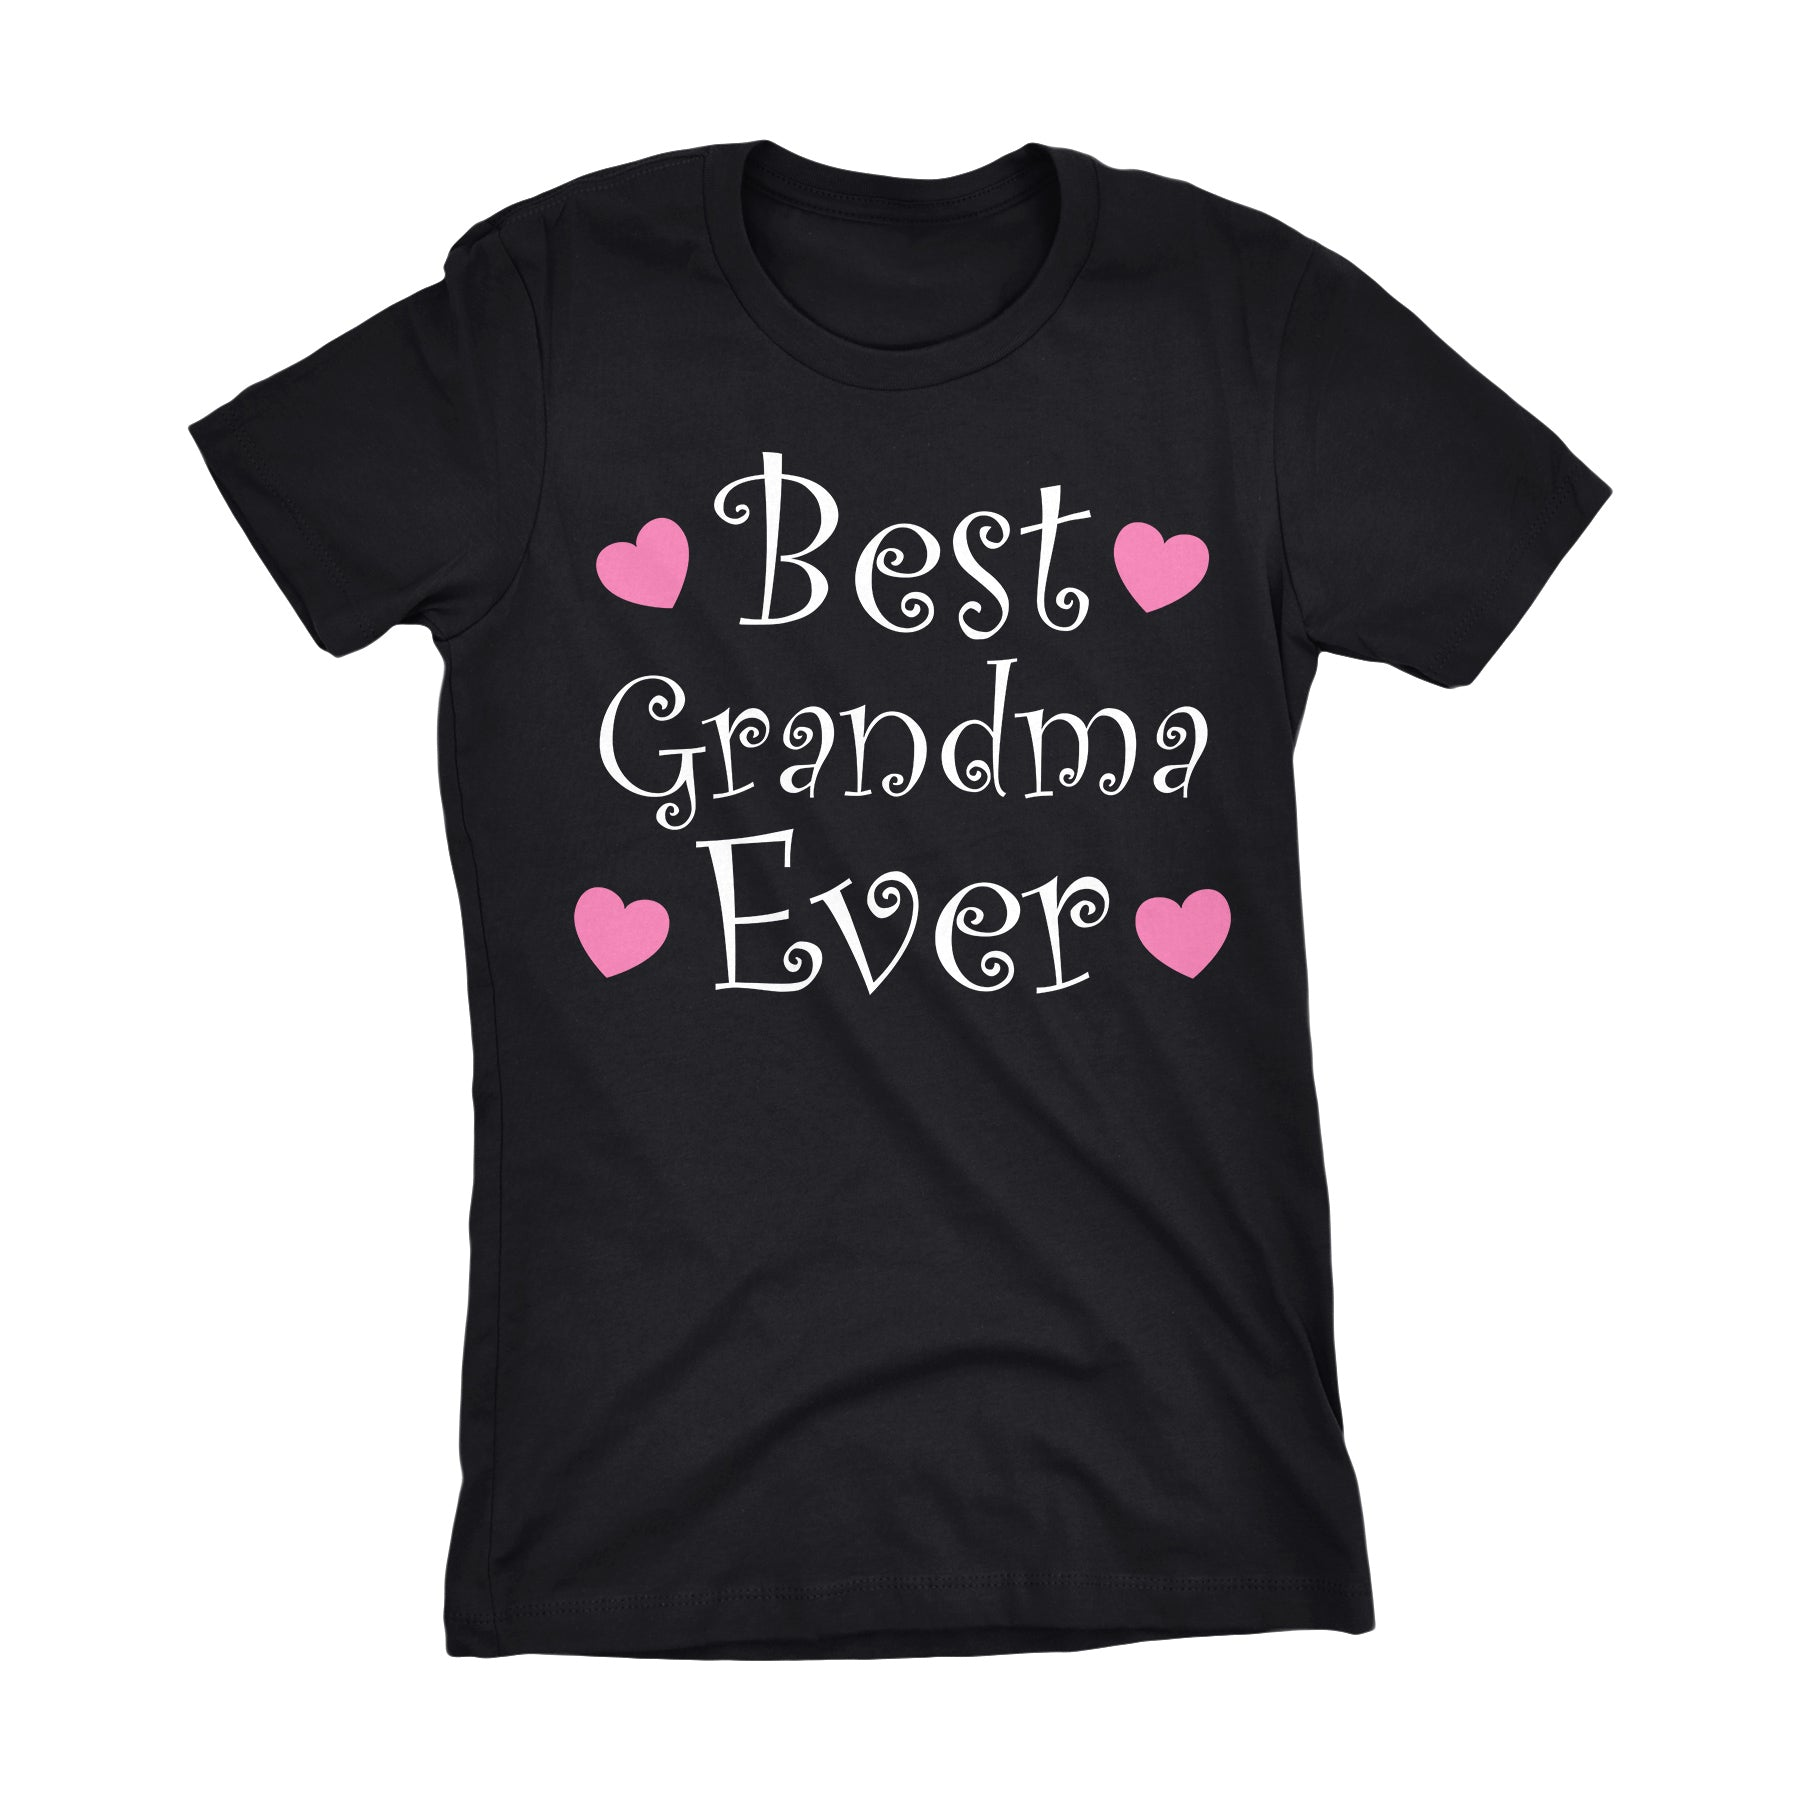 Best GRANDMA Ever - Hearts 002LDS - Mother's Day Grandmother Ladies Fit T-shirt